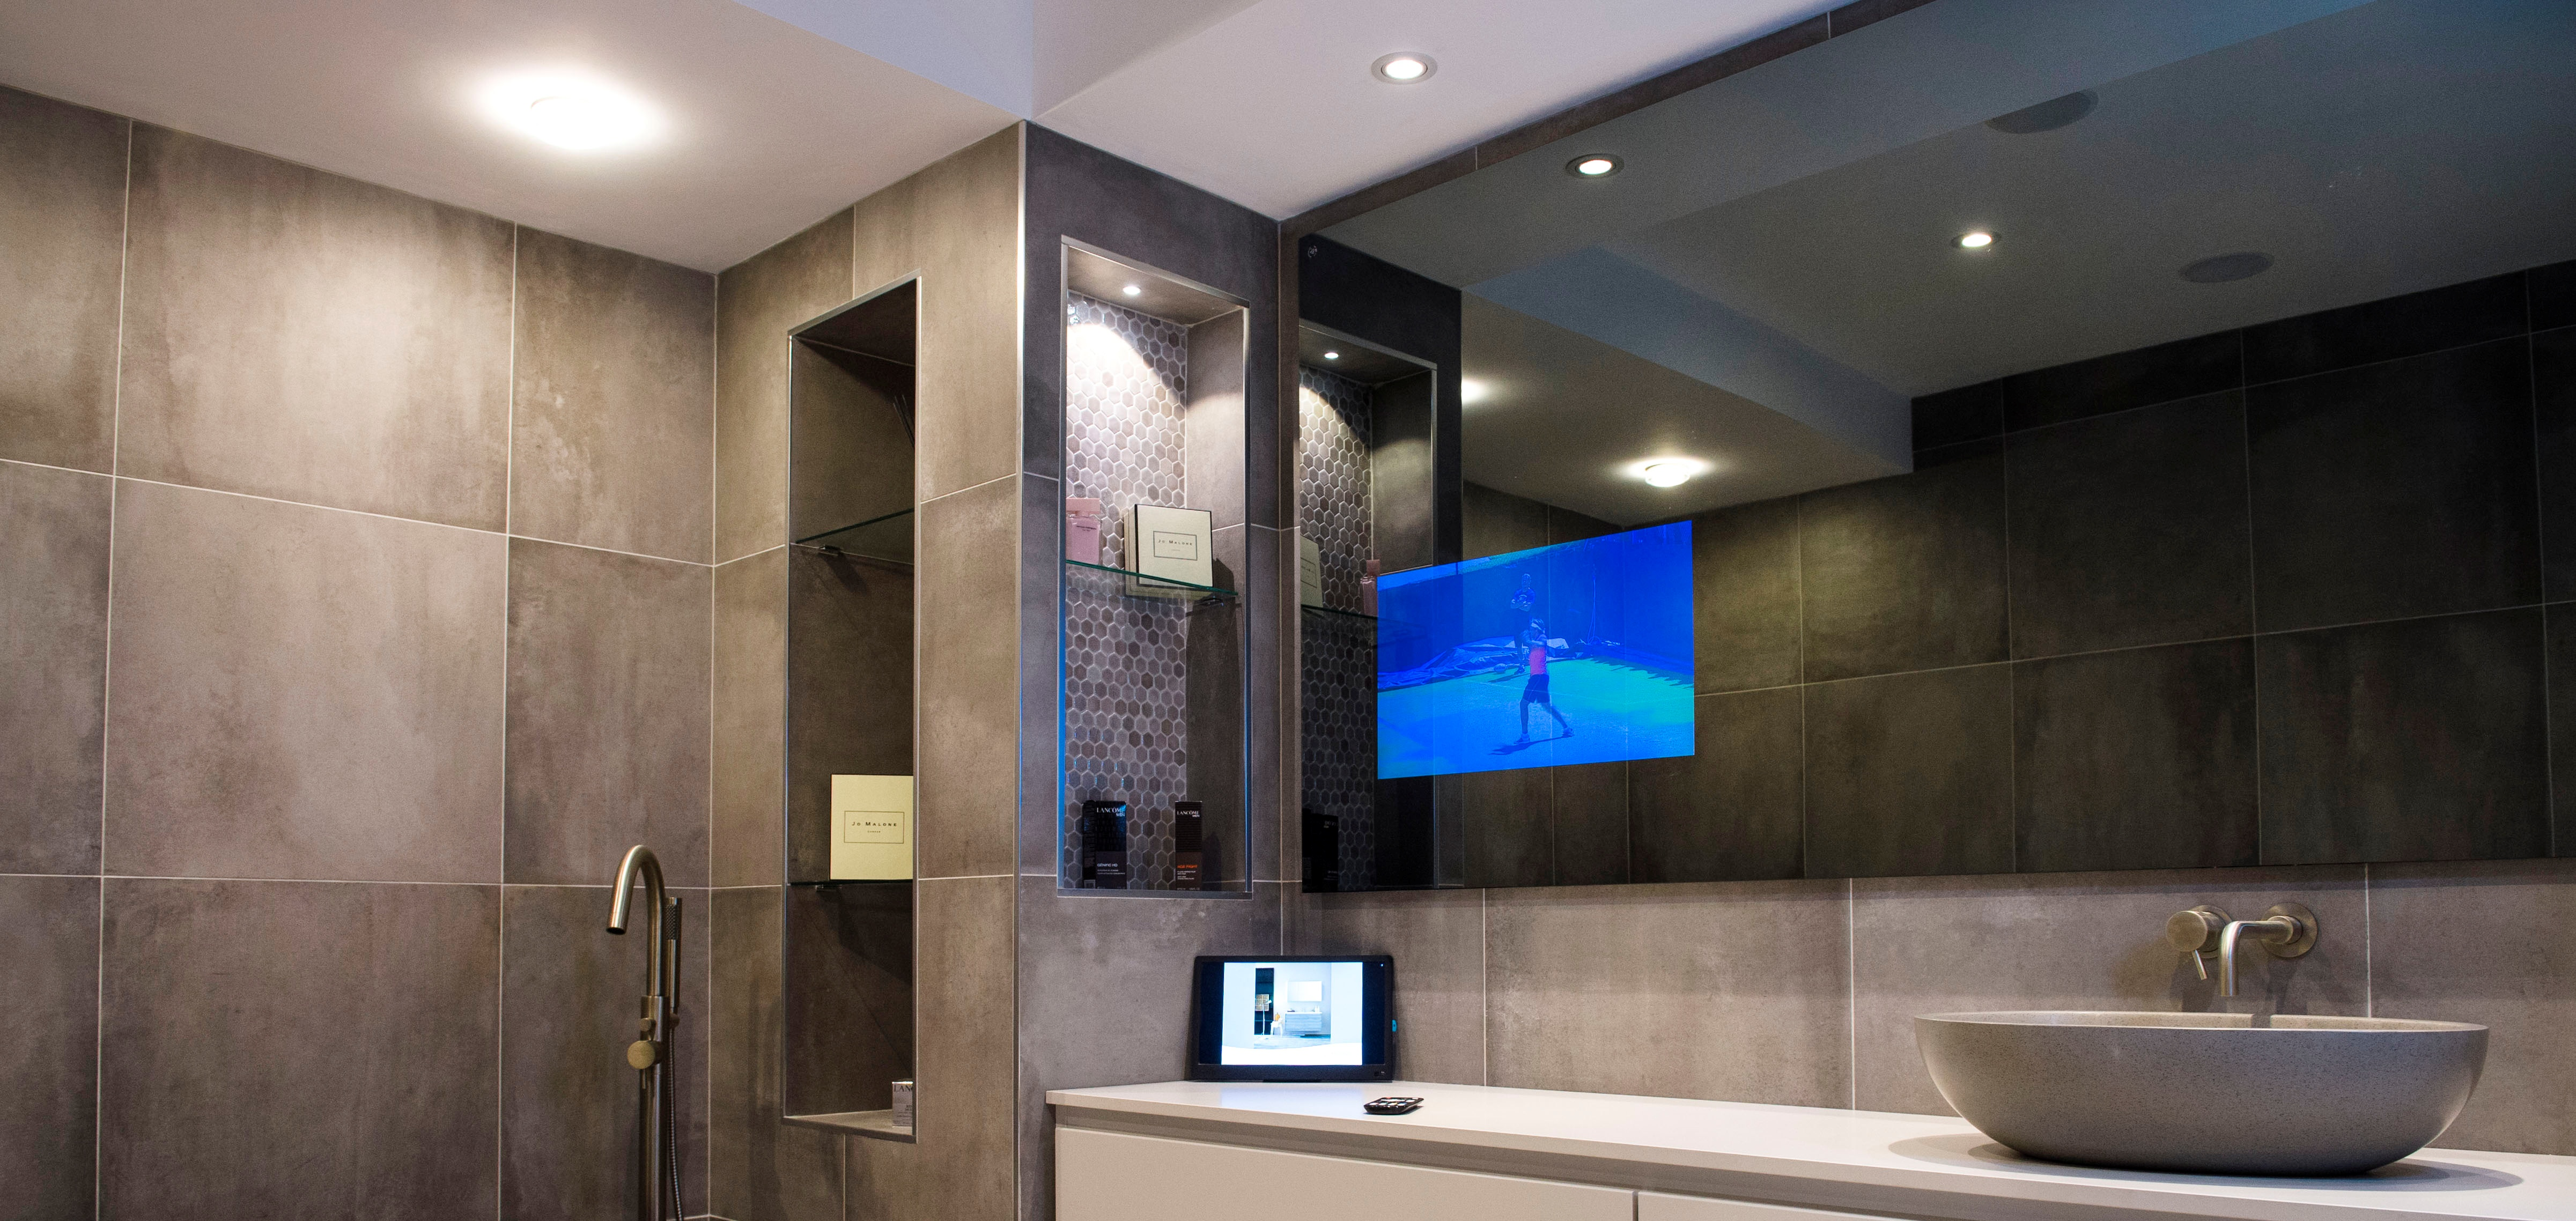 Vanity Mirror Television By Techvision Page